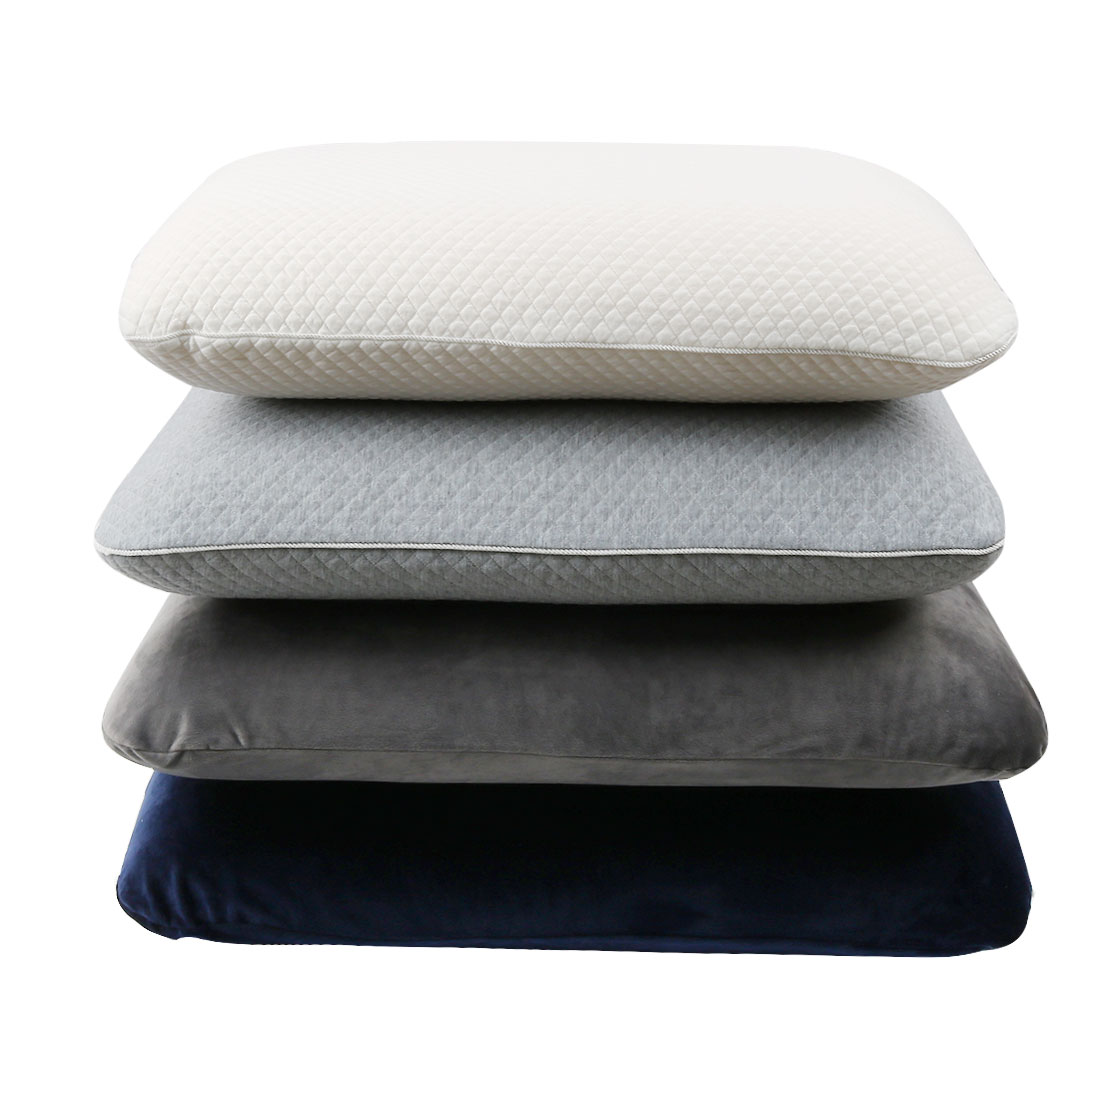 Bedding Sleeping Slow Rebound Memory Foam Pillows with Neck Support,Yet Firm Mid-Core Pillow, Care Pillow